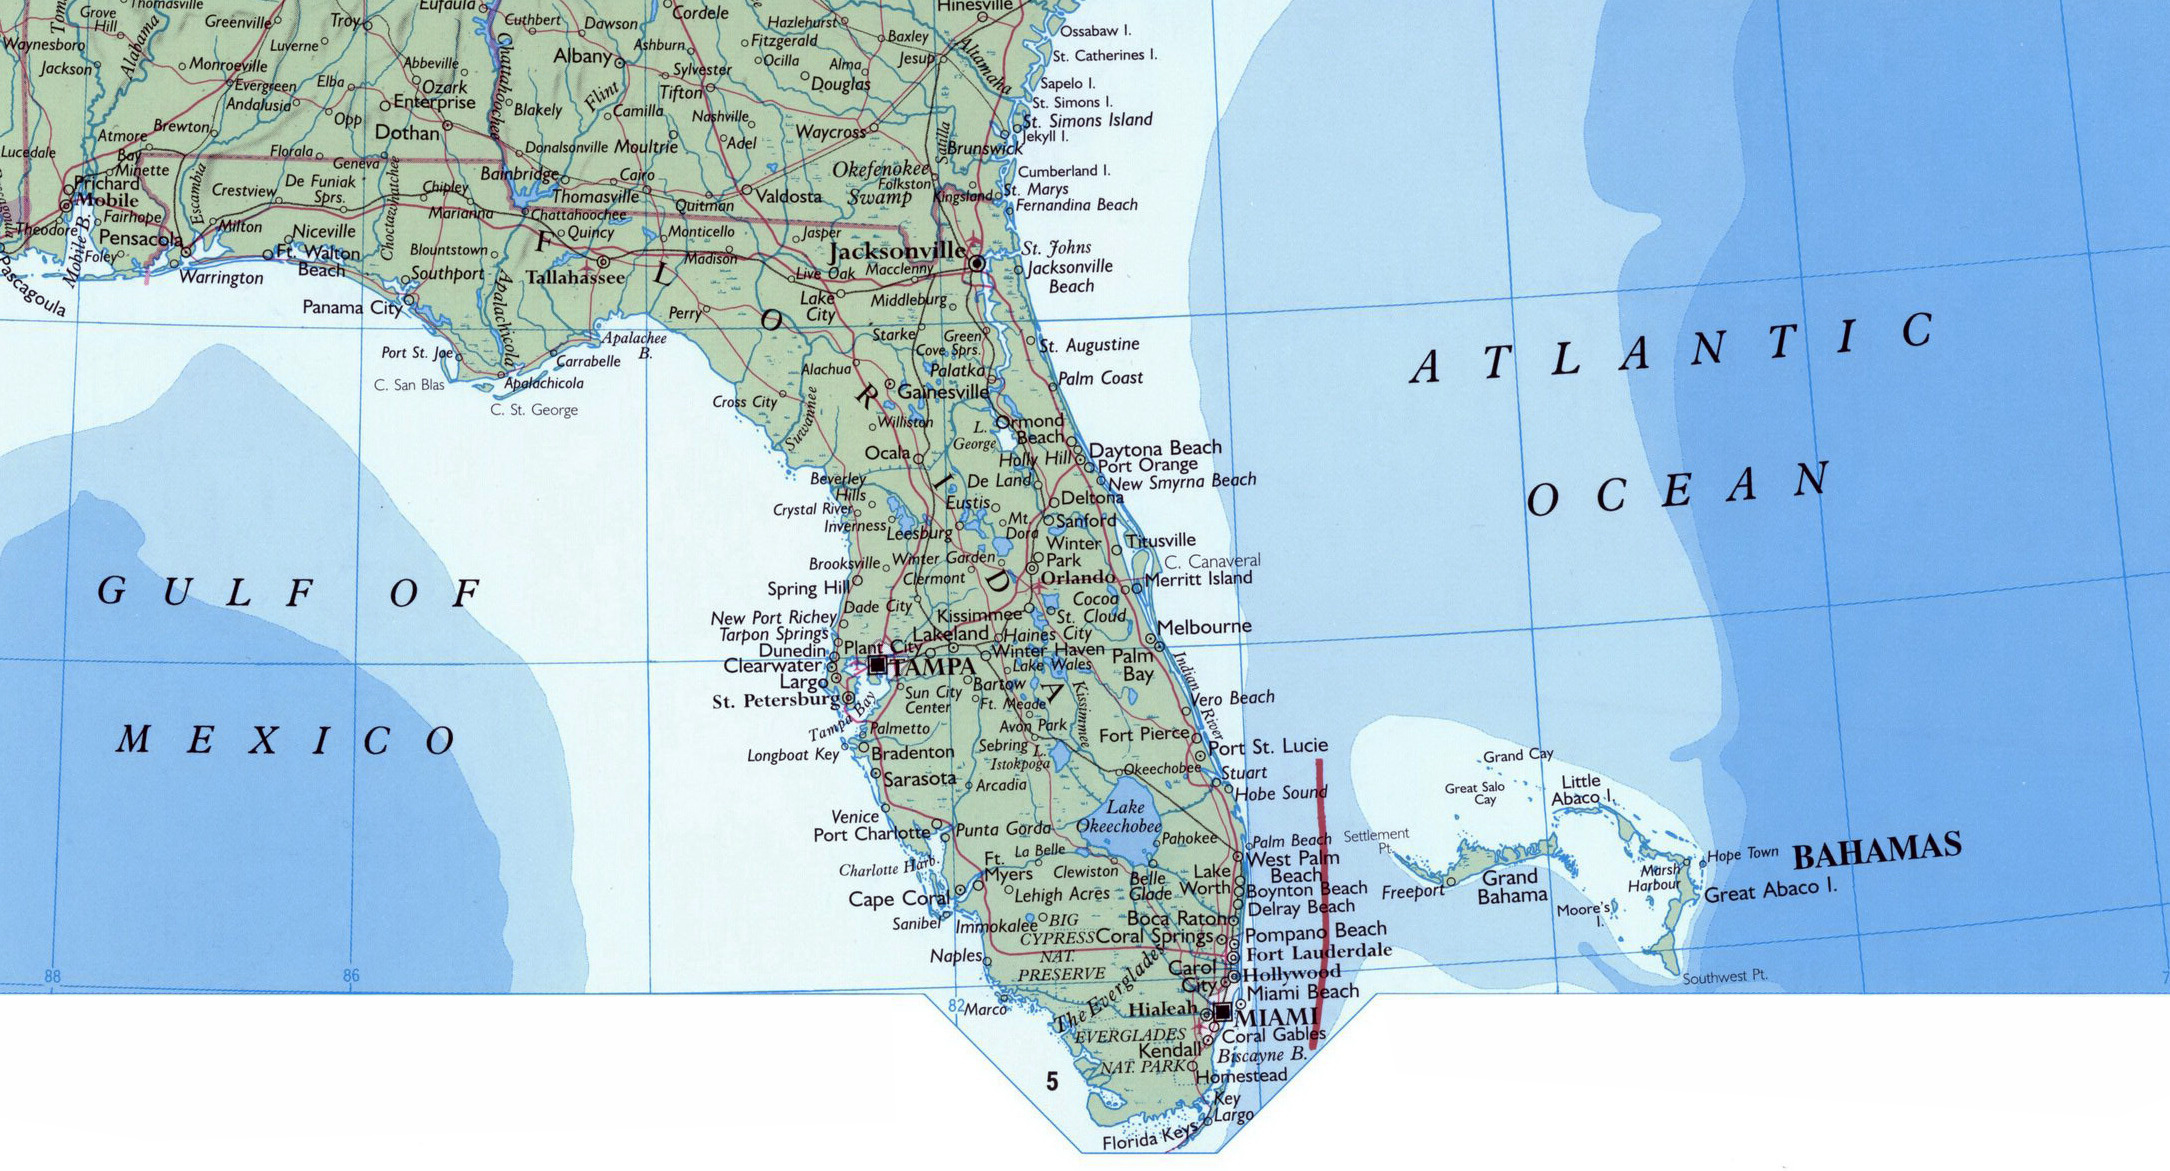 Large Map Of Florida State With Roads Highways And Cities - Florida map state